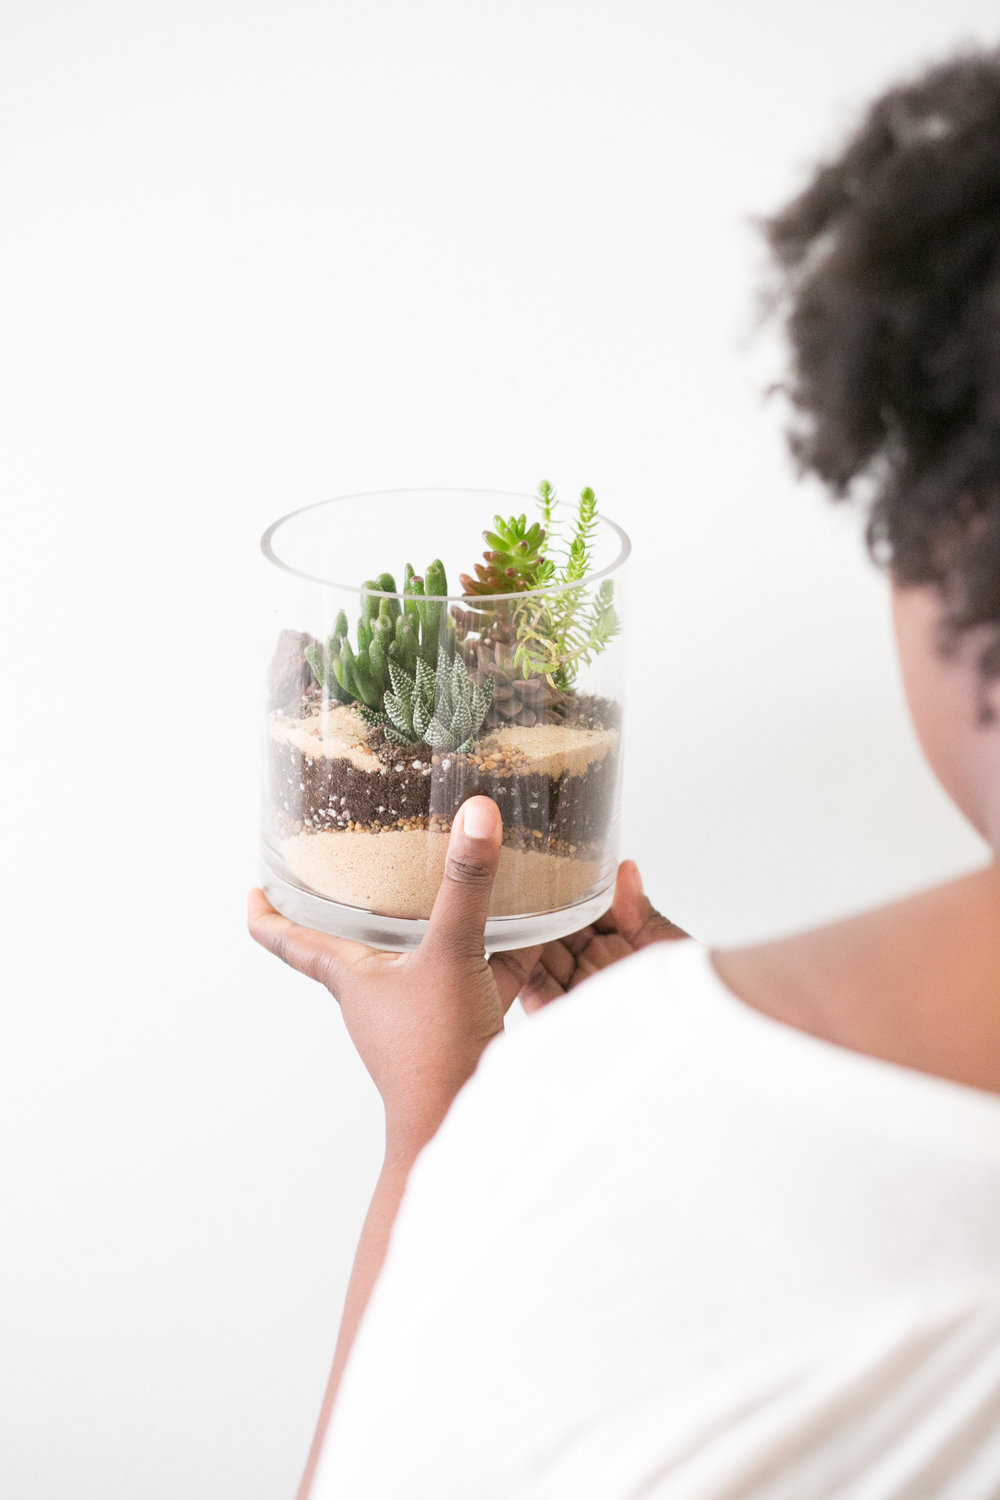 You can make a terrarium at our DIY terrarium bar - a fun activity for a date night or getting to know your new roommate.